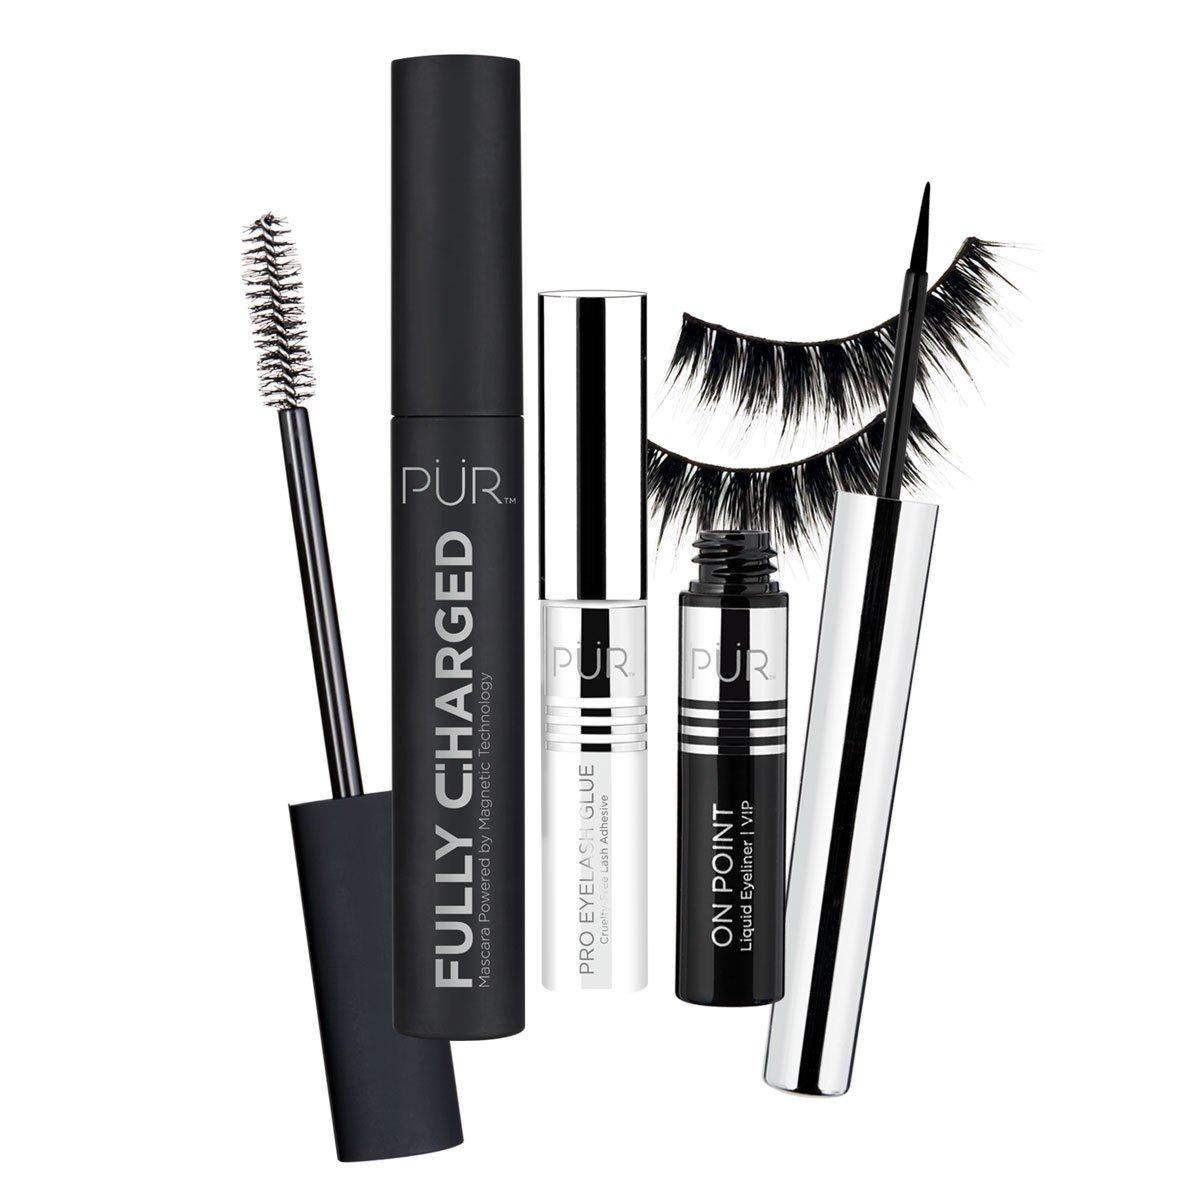 Pur Store View Life of the Party Mascara, Liner and Lash Set